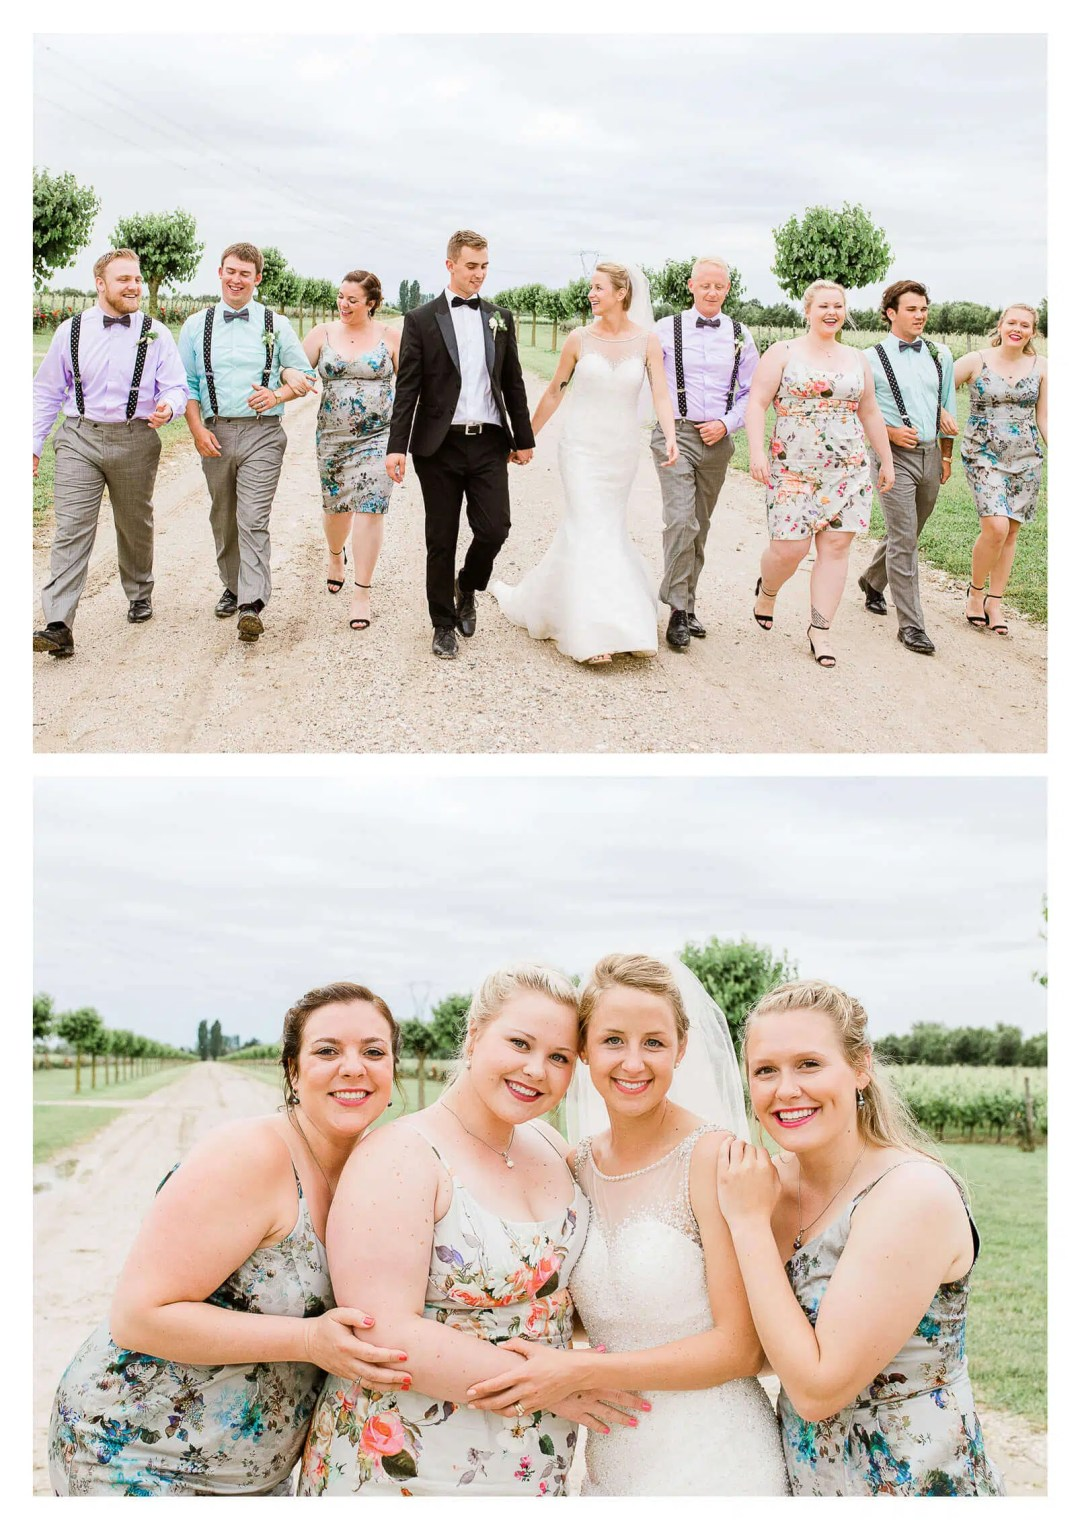 Bridal party portrait in vineyard | Italy destination photographer